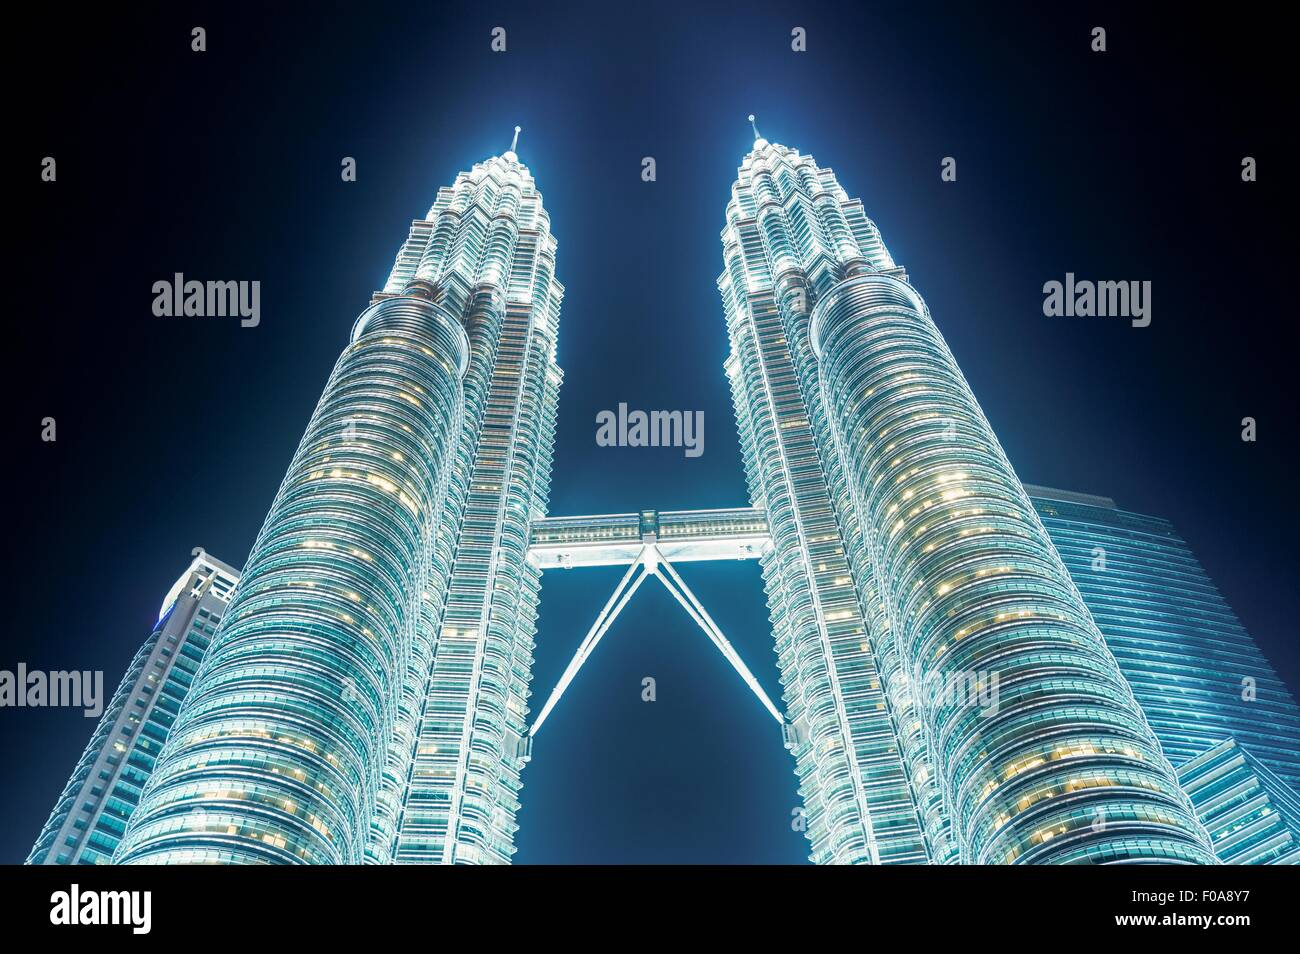 Petronas Towers, illuminated at night, low angle view, Kuala Lumpar, Malaysia - Stock Image